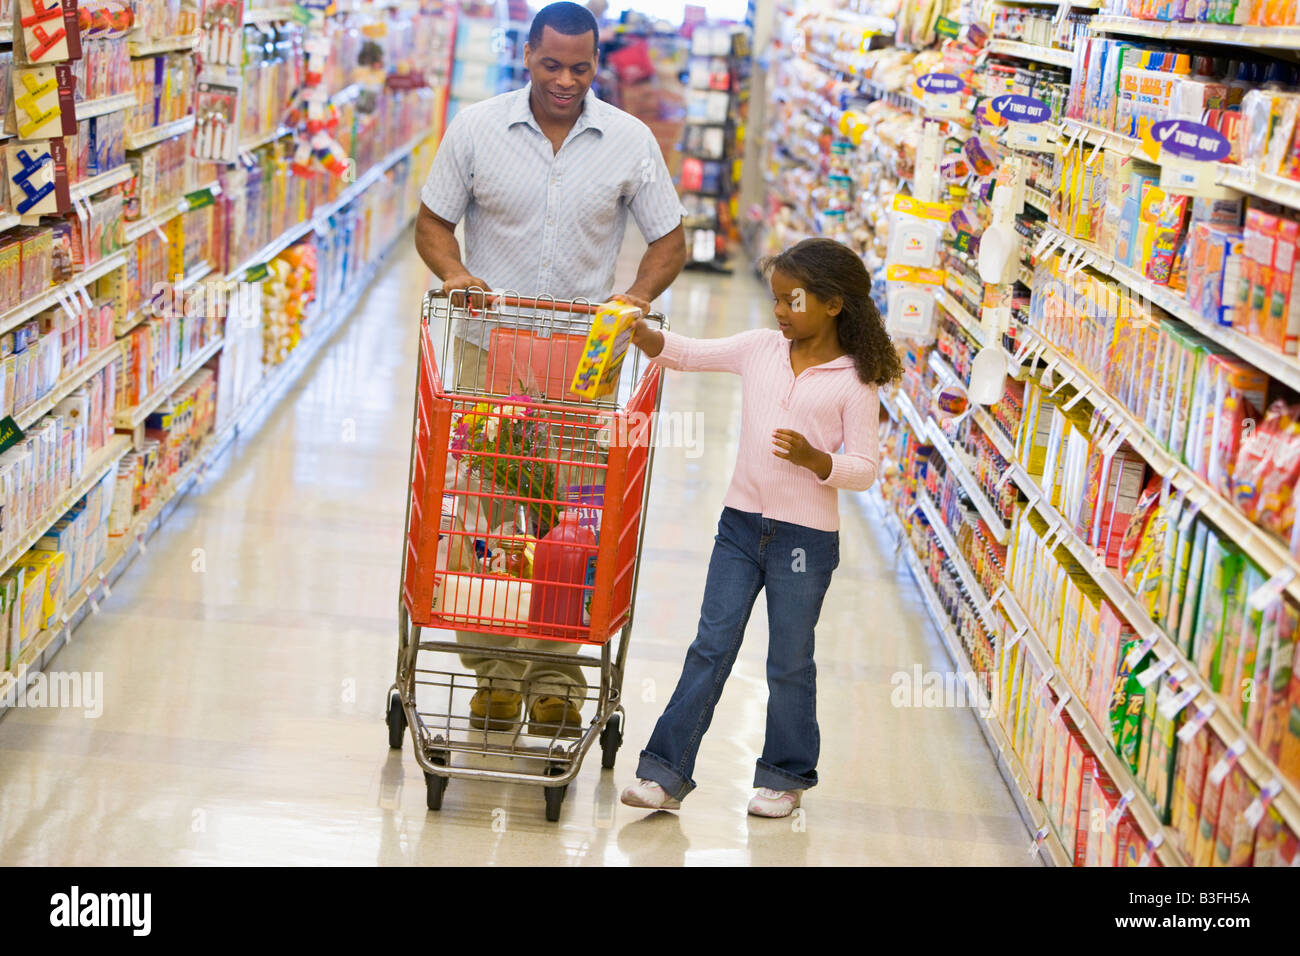 Father and daughter shopping at a grocery store - Stock Image